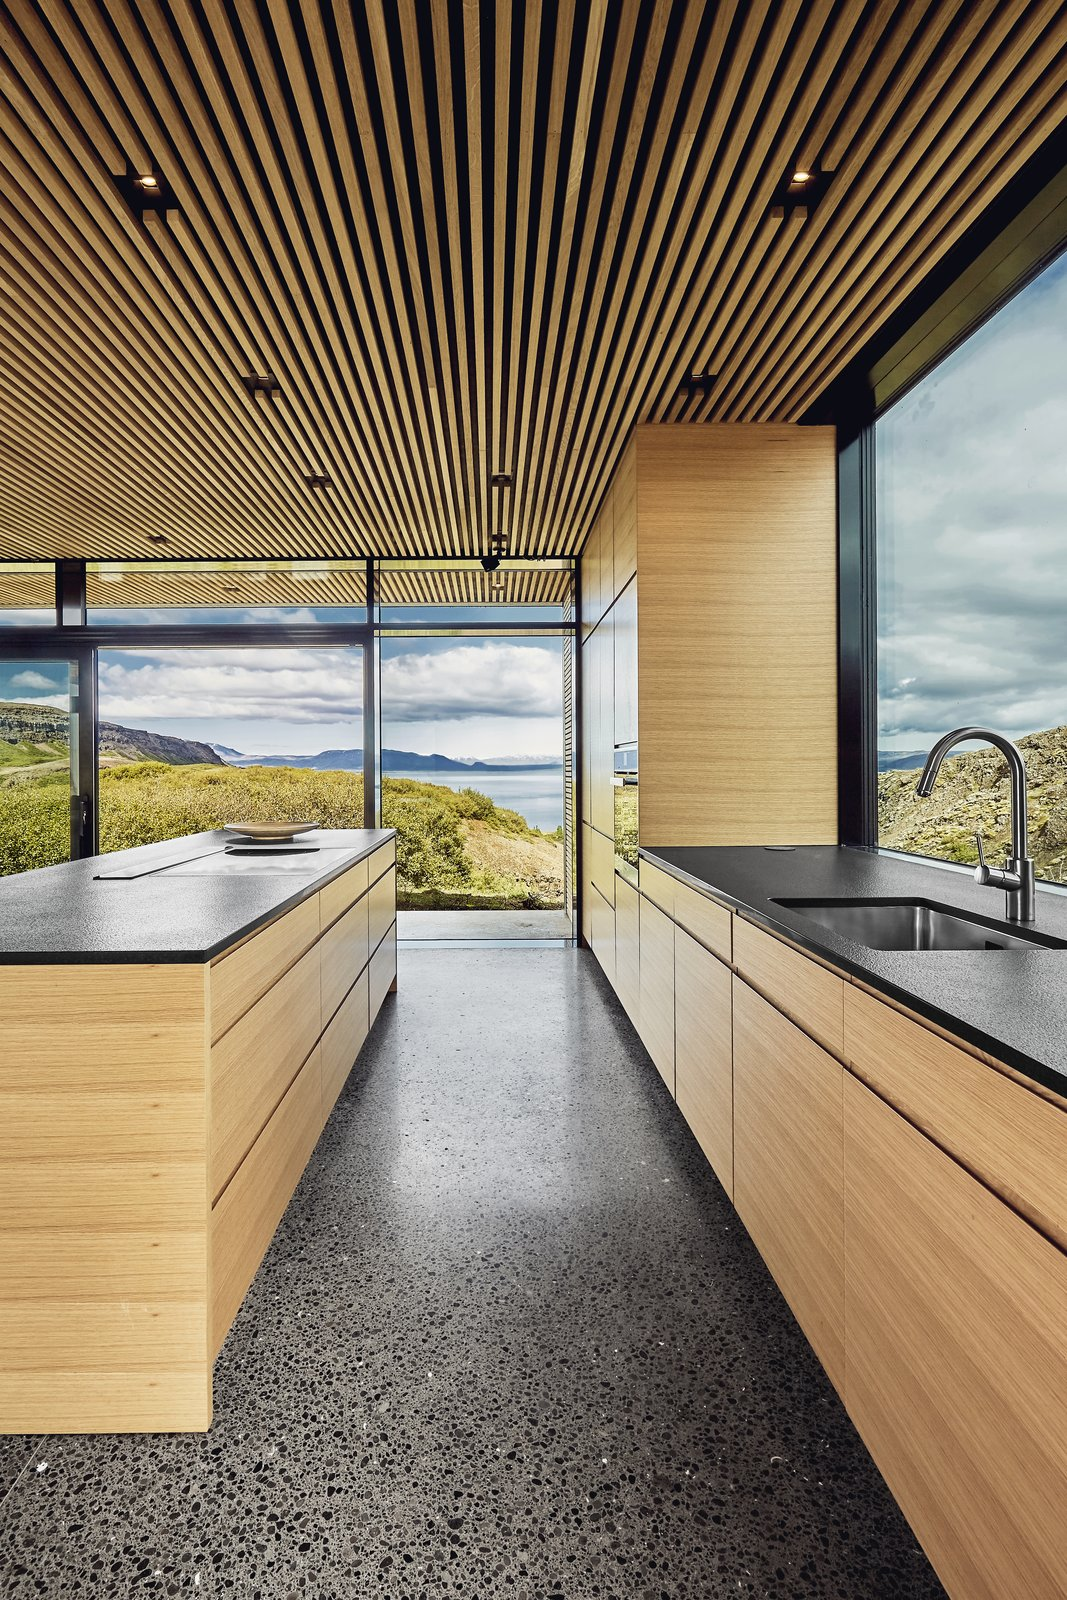 Kitchen, Undermount Sink, Recessed Lighting, Wood Cabinet, Wall Oven, Cooktops, and Concrete Floor The view is framed from every angle.  Best Photos from A Timber-and-Concrete Summer House in Iceland Boasts Breathtaking Views